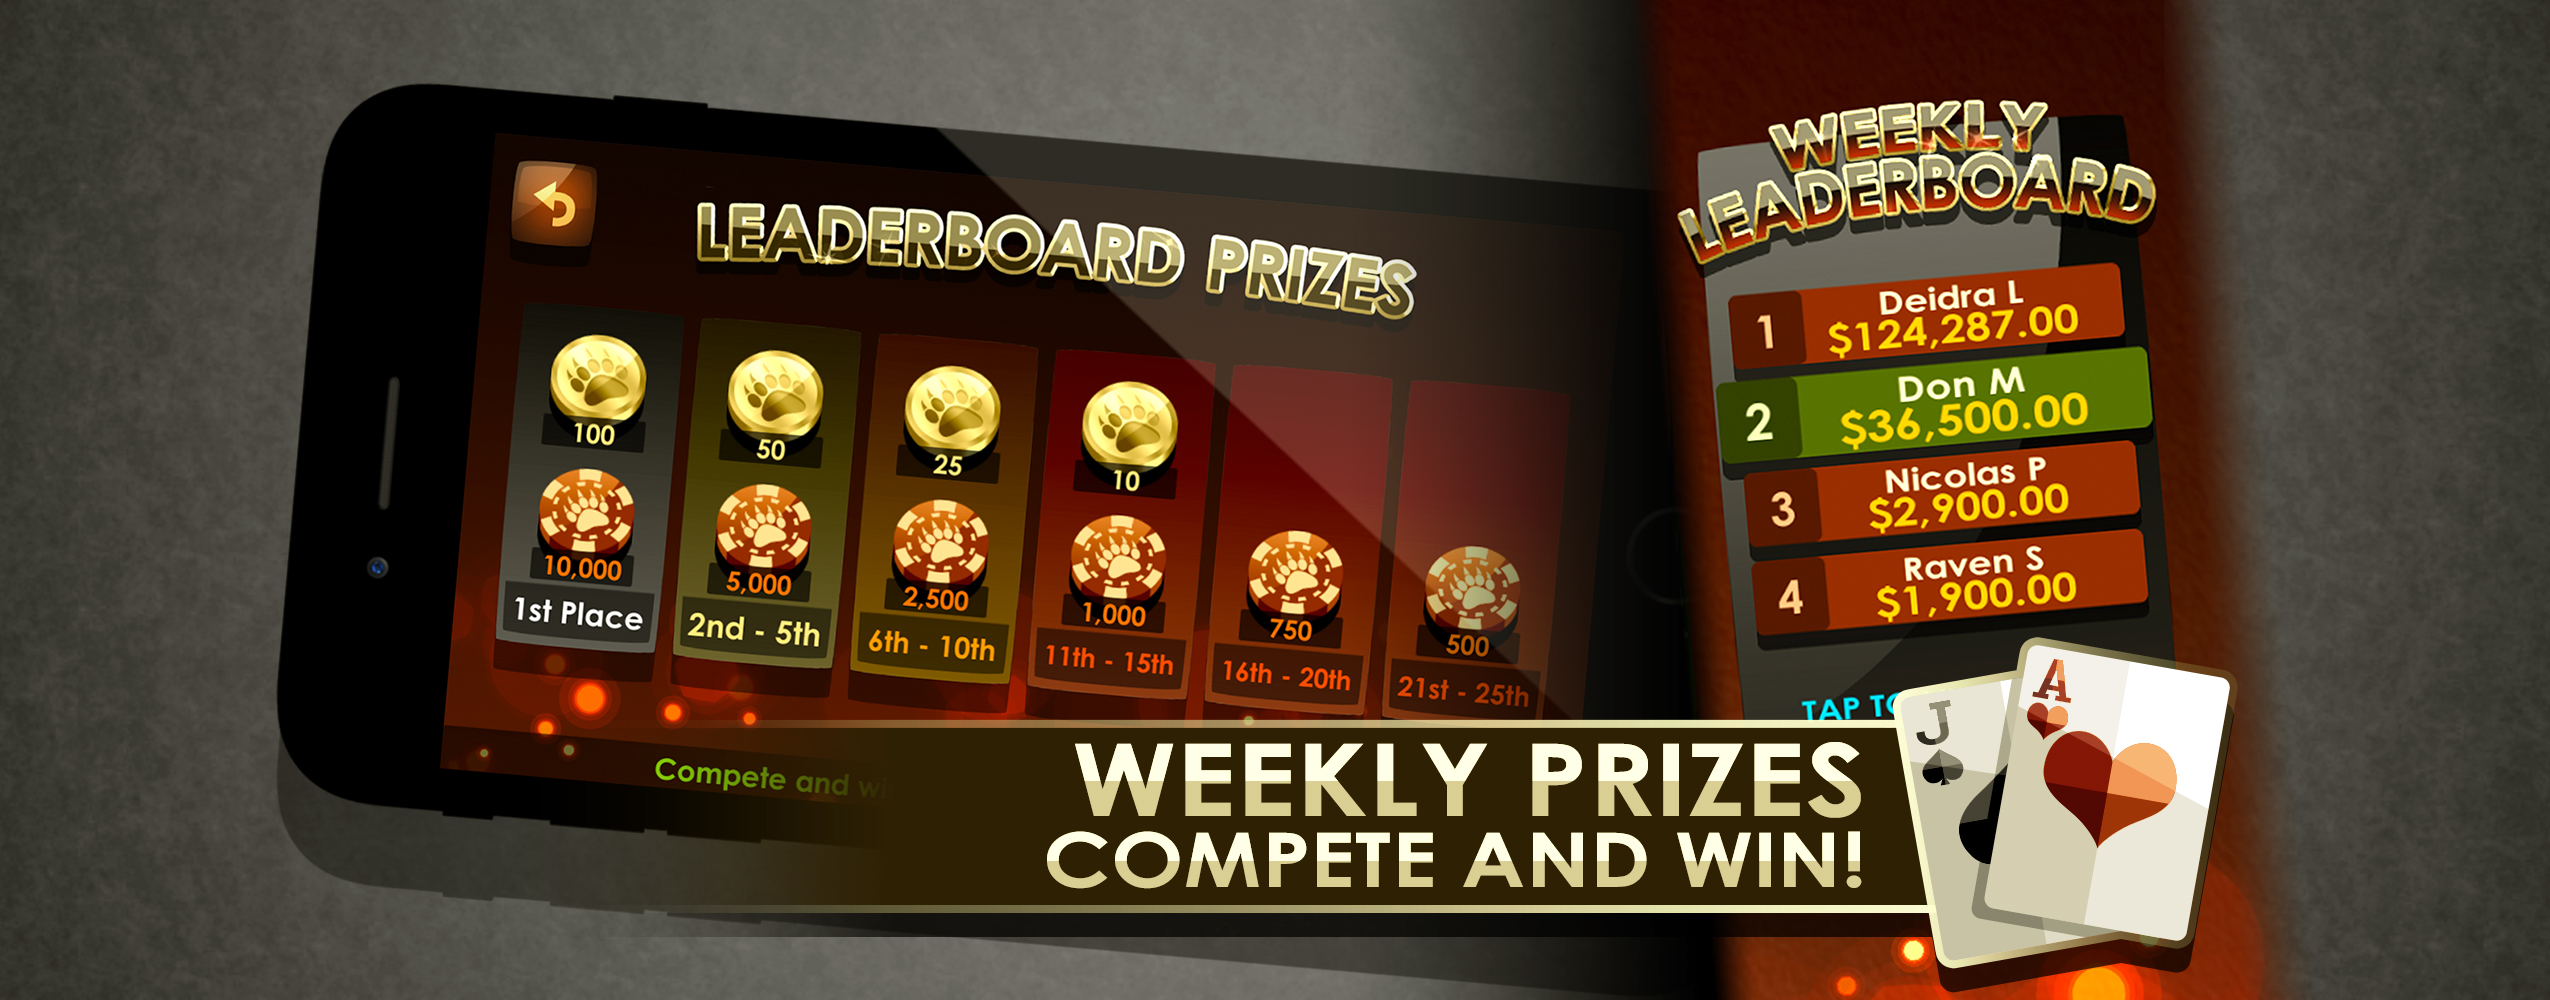 Weekly Prizes!